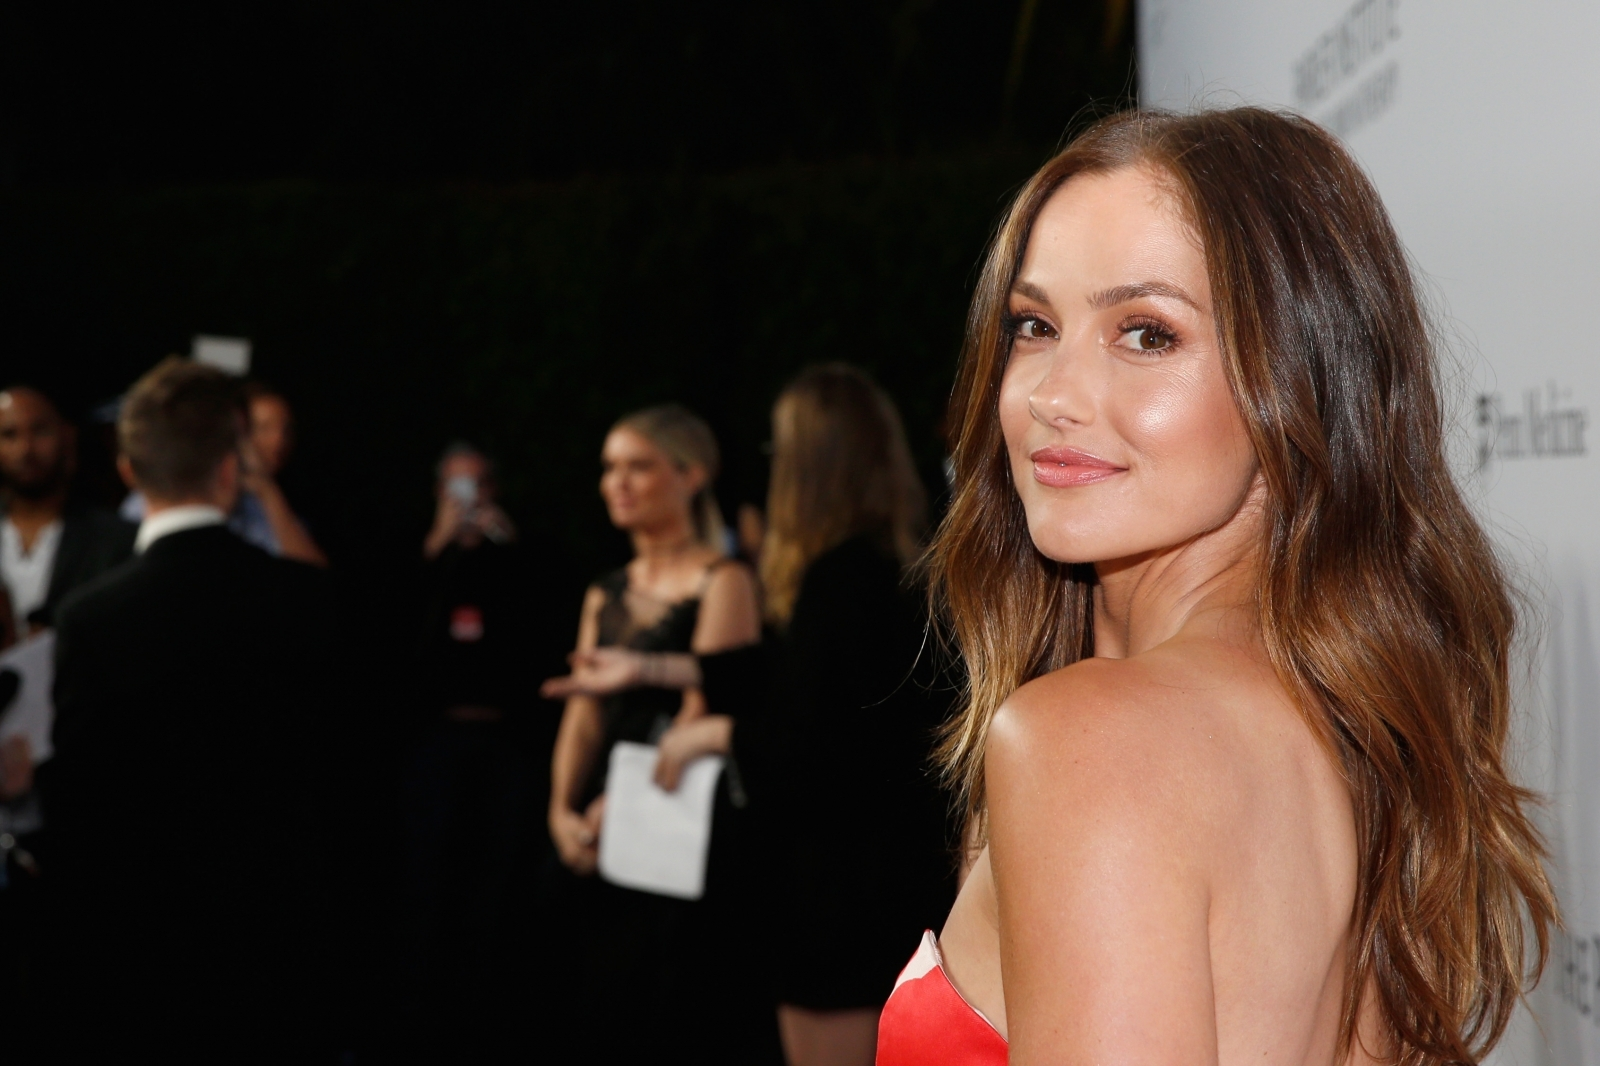 Minka Kelly addresses rumors she broke up Jesse Williams' marriage